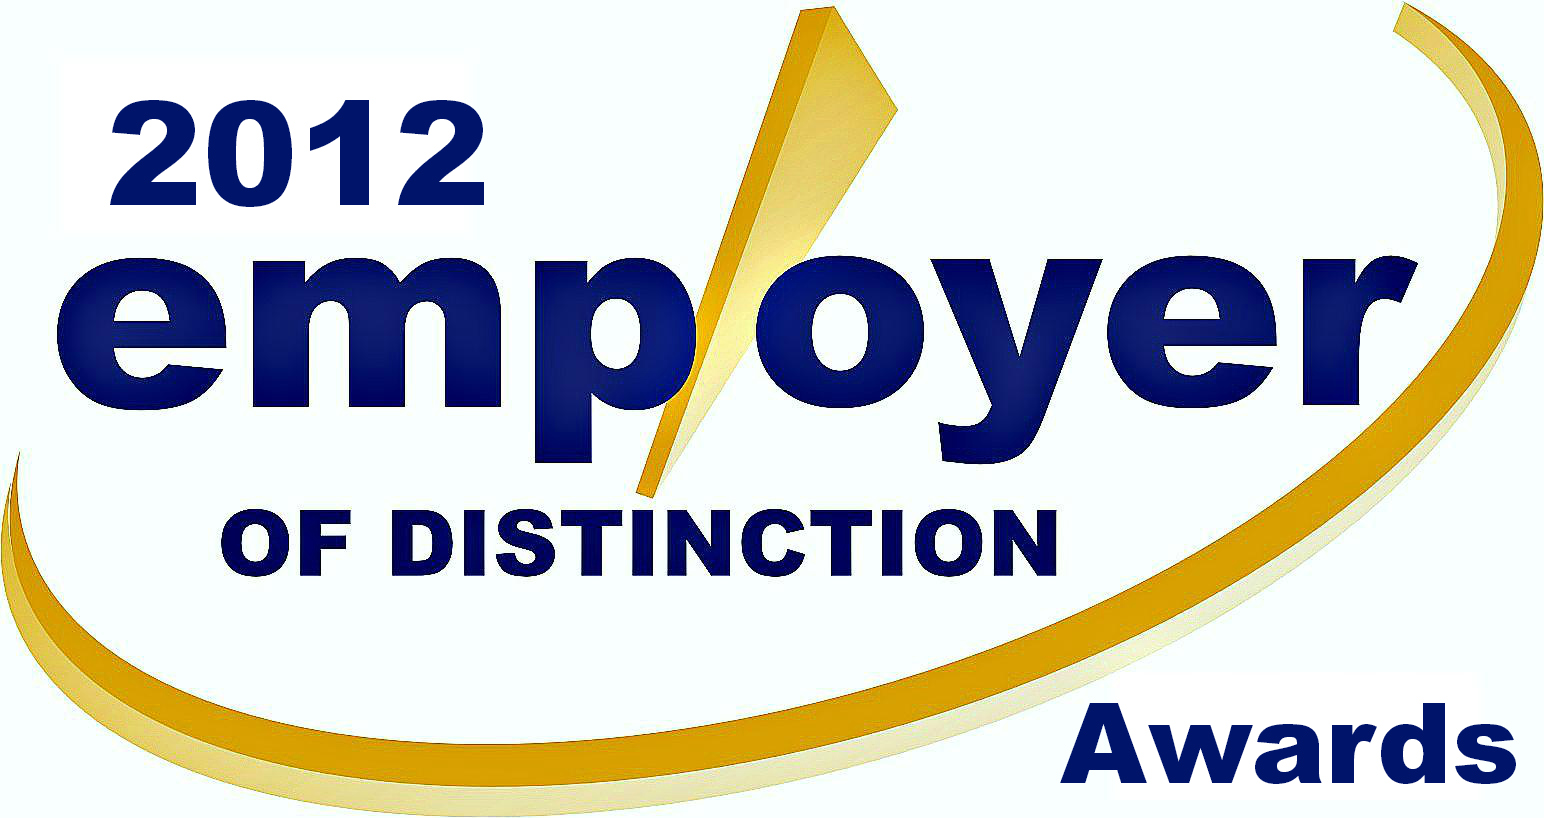 EOD Logo http://www.nlec.nf.ca/events/employer-distinction/employer-distinction-2012/